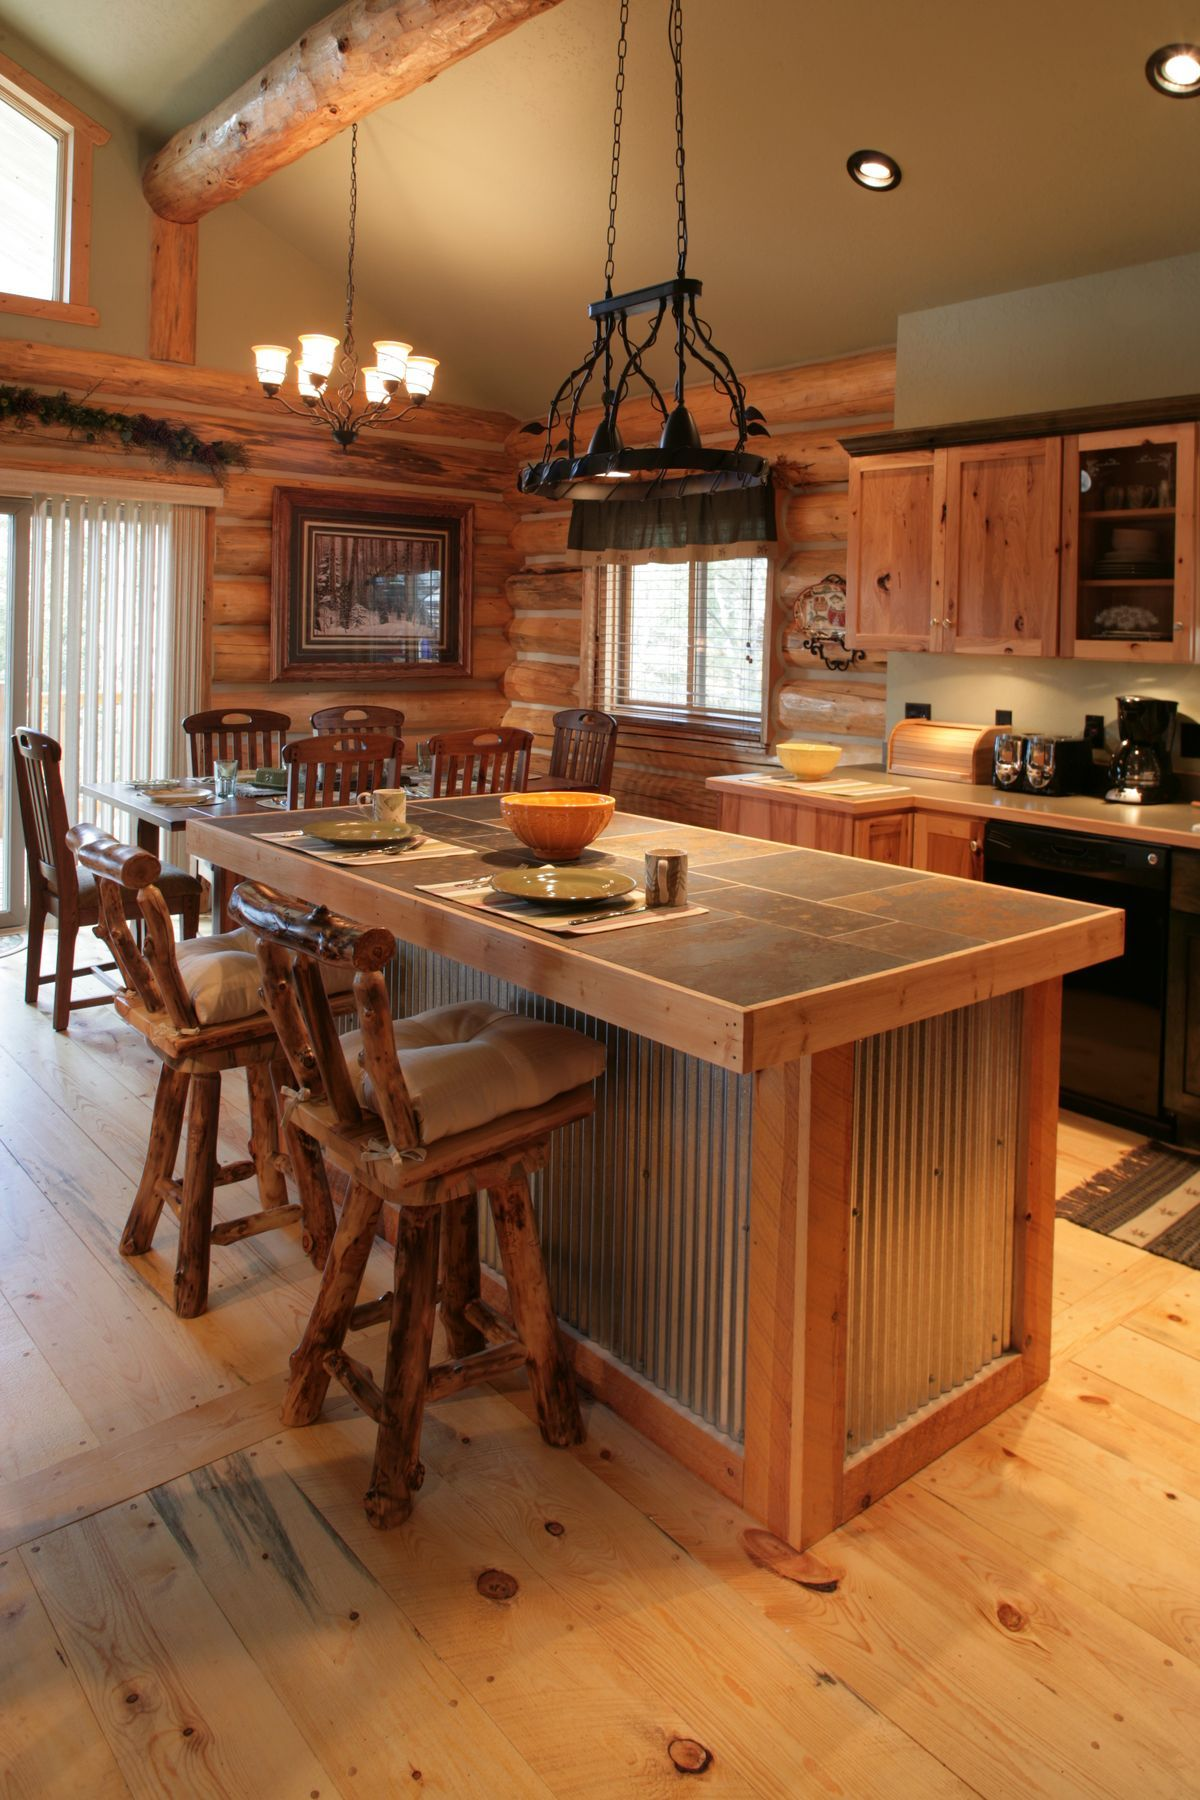 21 unique kitchen island ideas for every space and budget on extraordinary kitchen remodel ideas id=80963